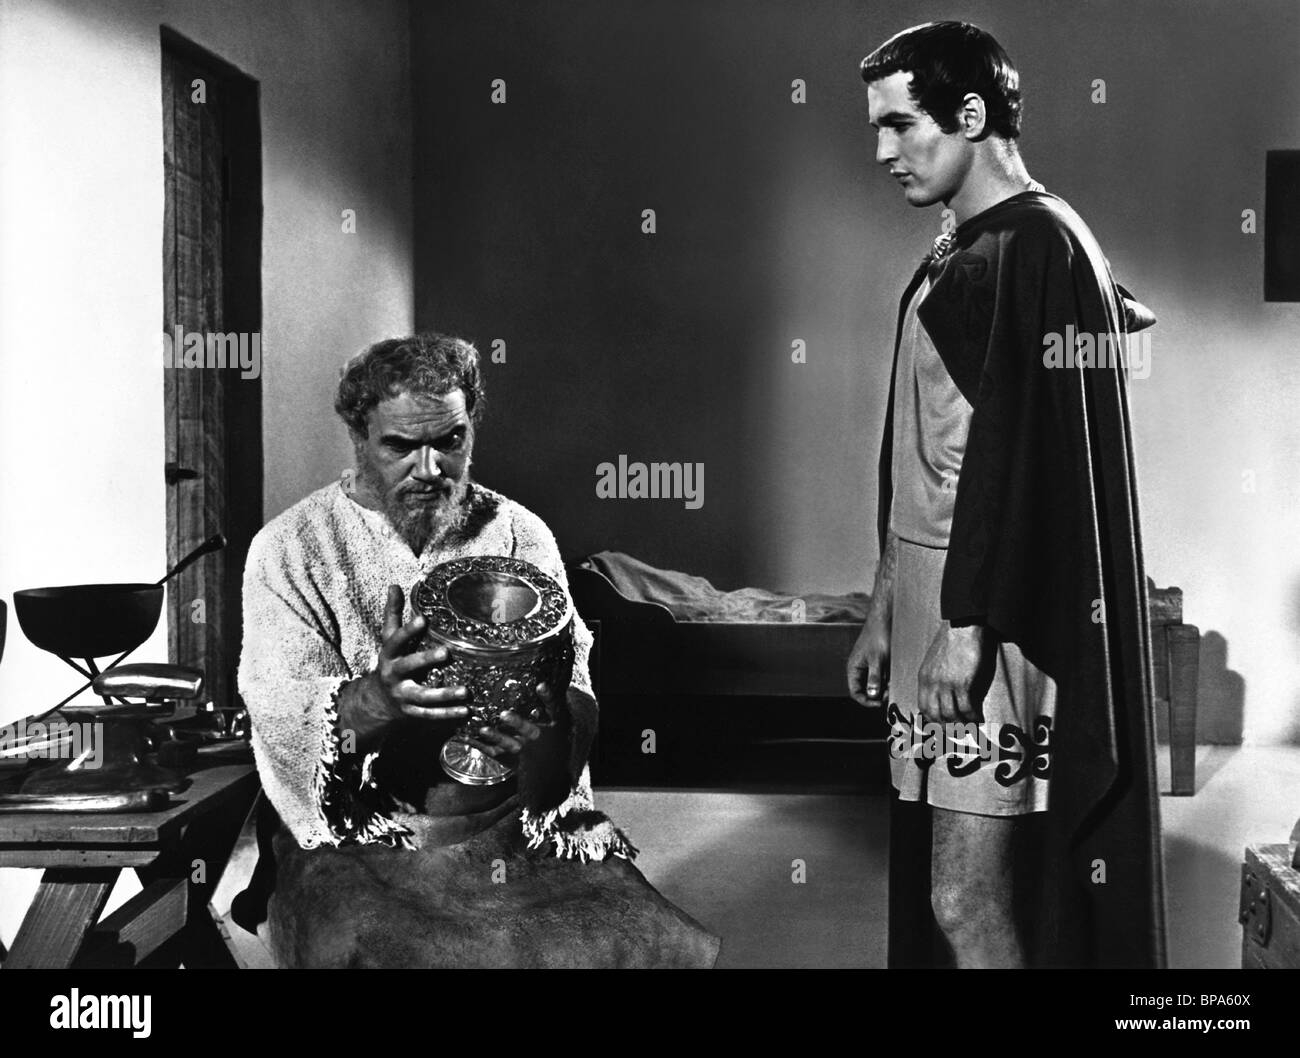 E.G. MARSHALL, PAUL NEWMAN, THE SILVER CHALICE, 1954 - Stock Image